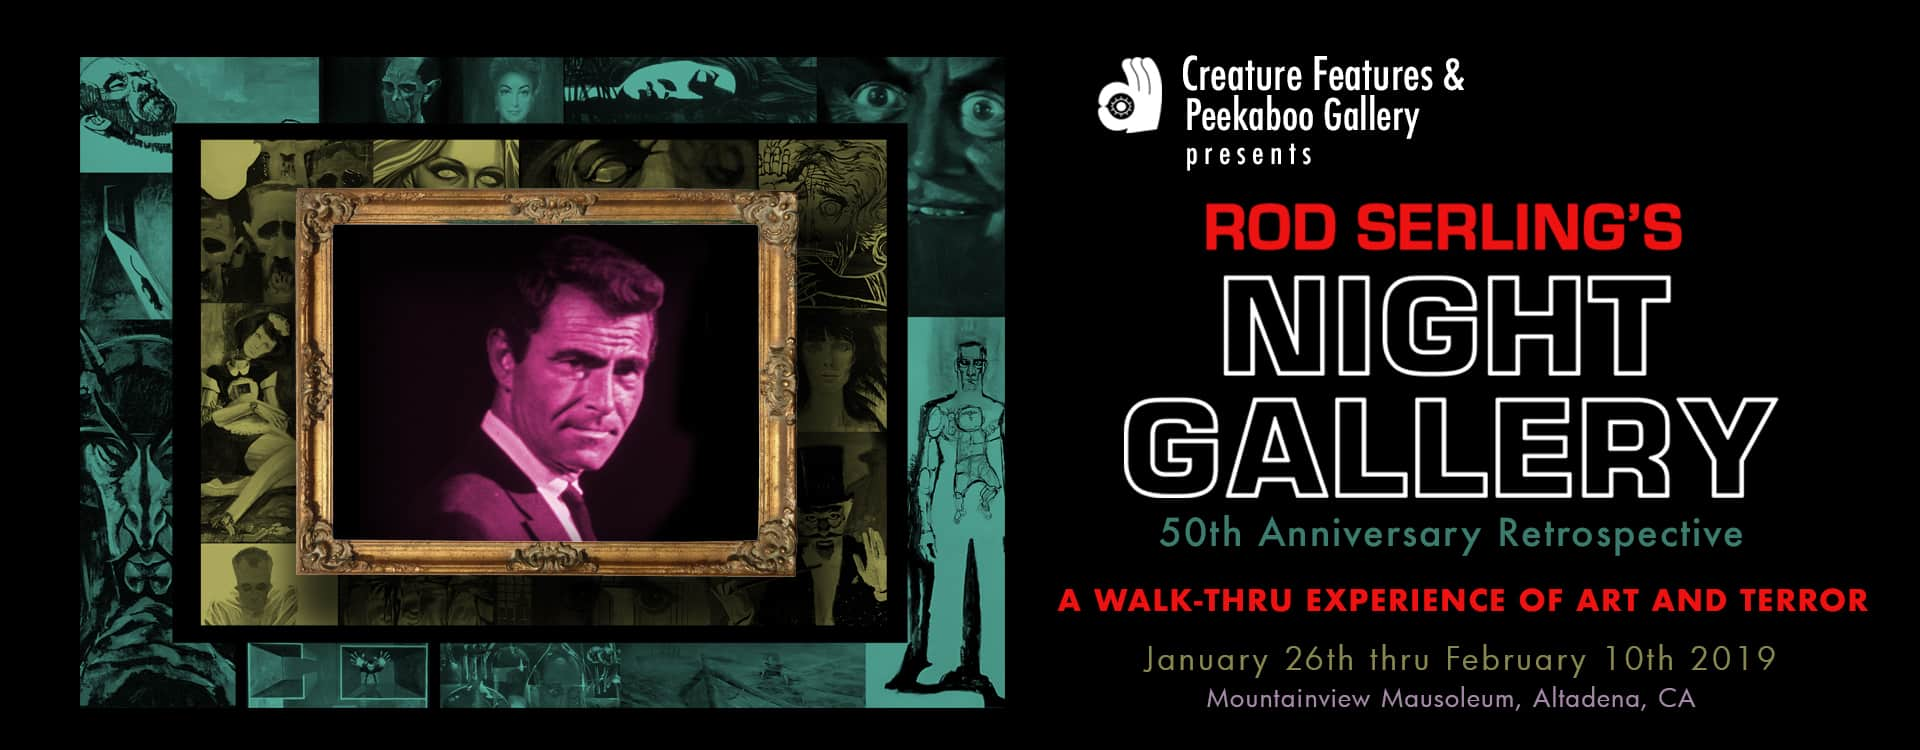 Rod Serling's NIGHT GALLERY invite